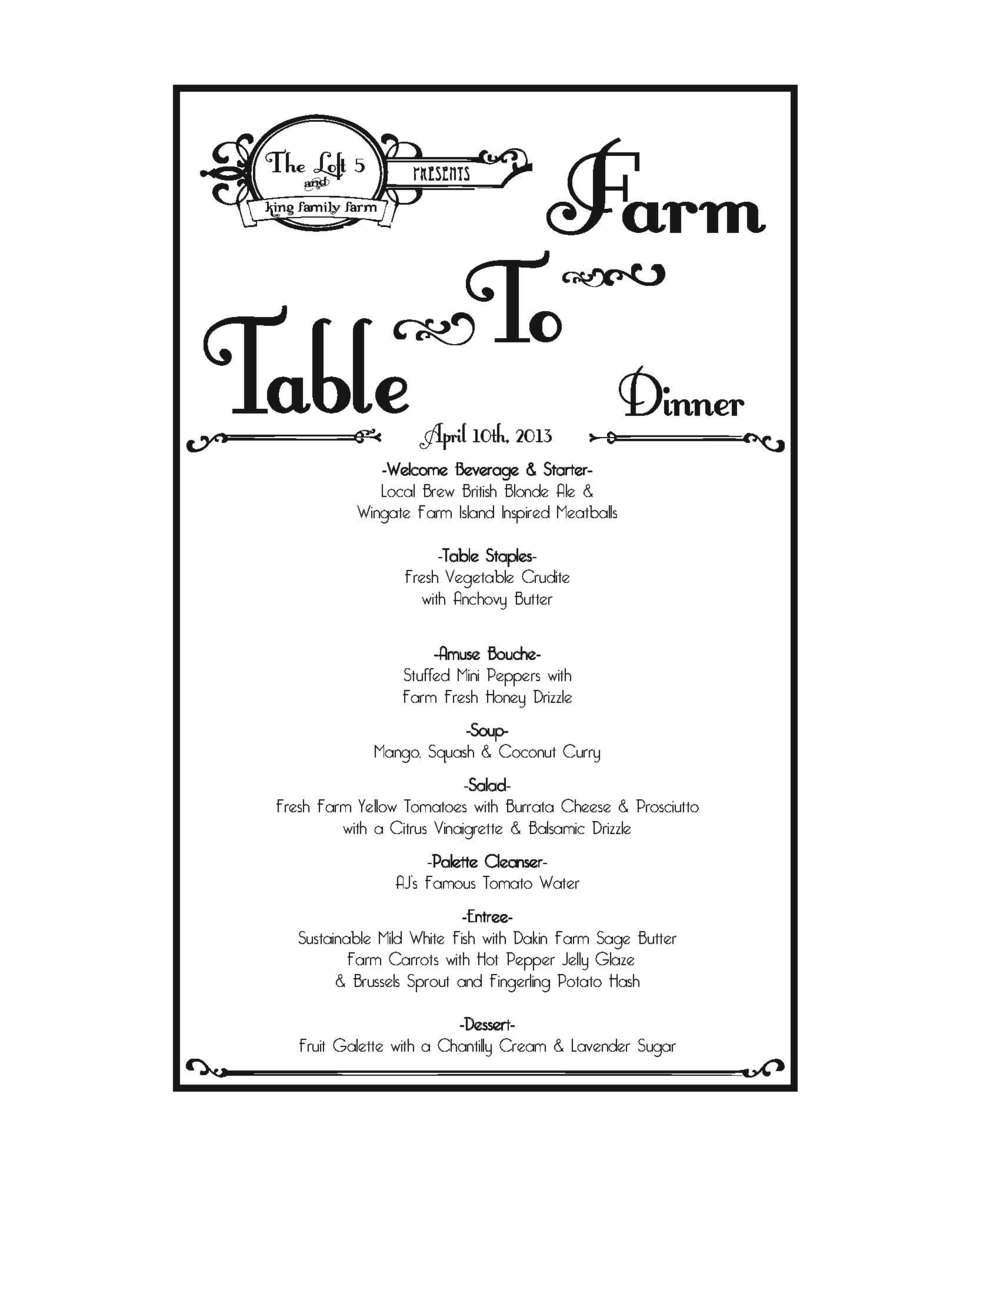 Table To Farm Menu 4.10.13.jpg